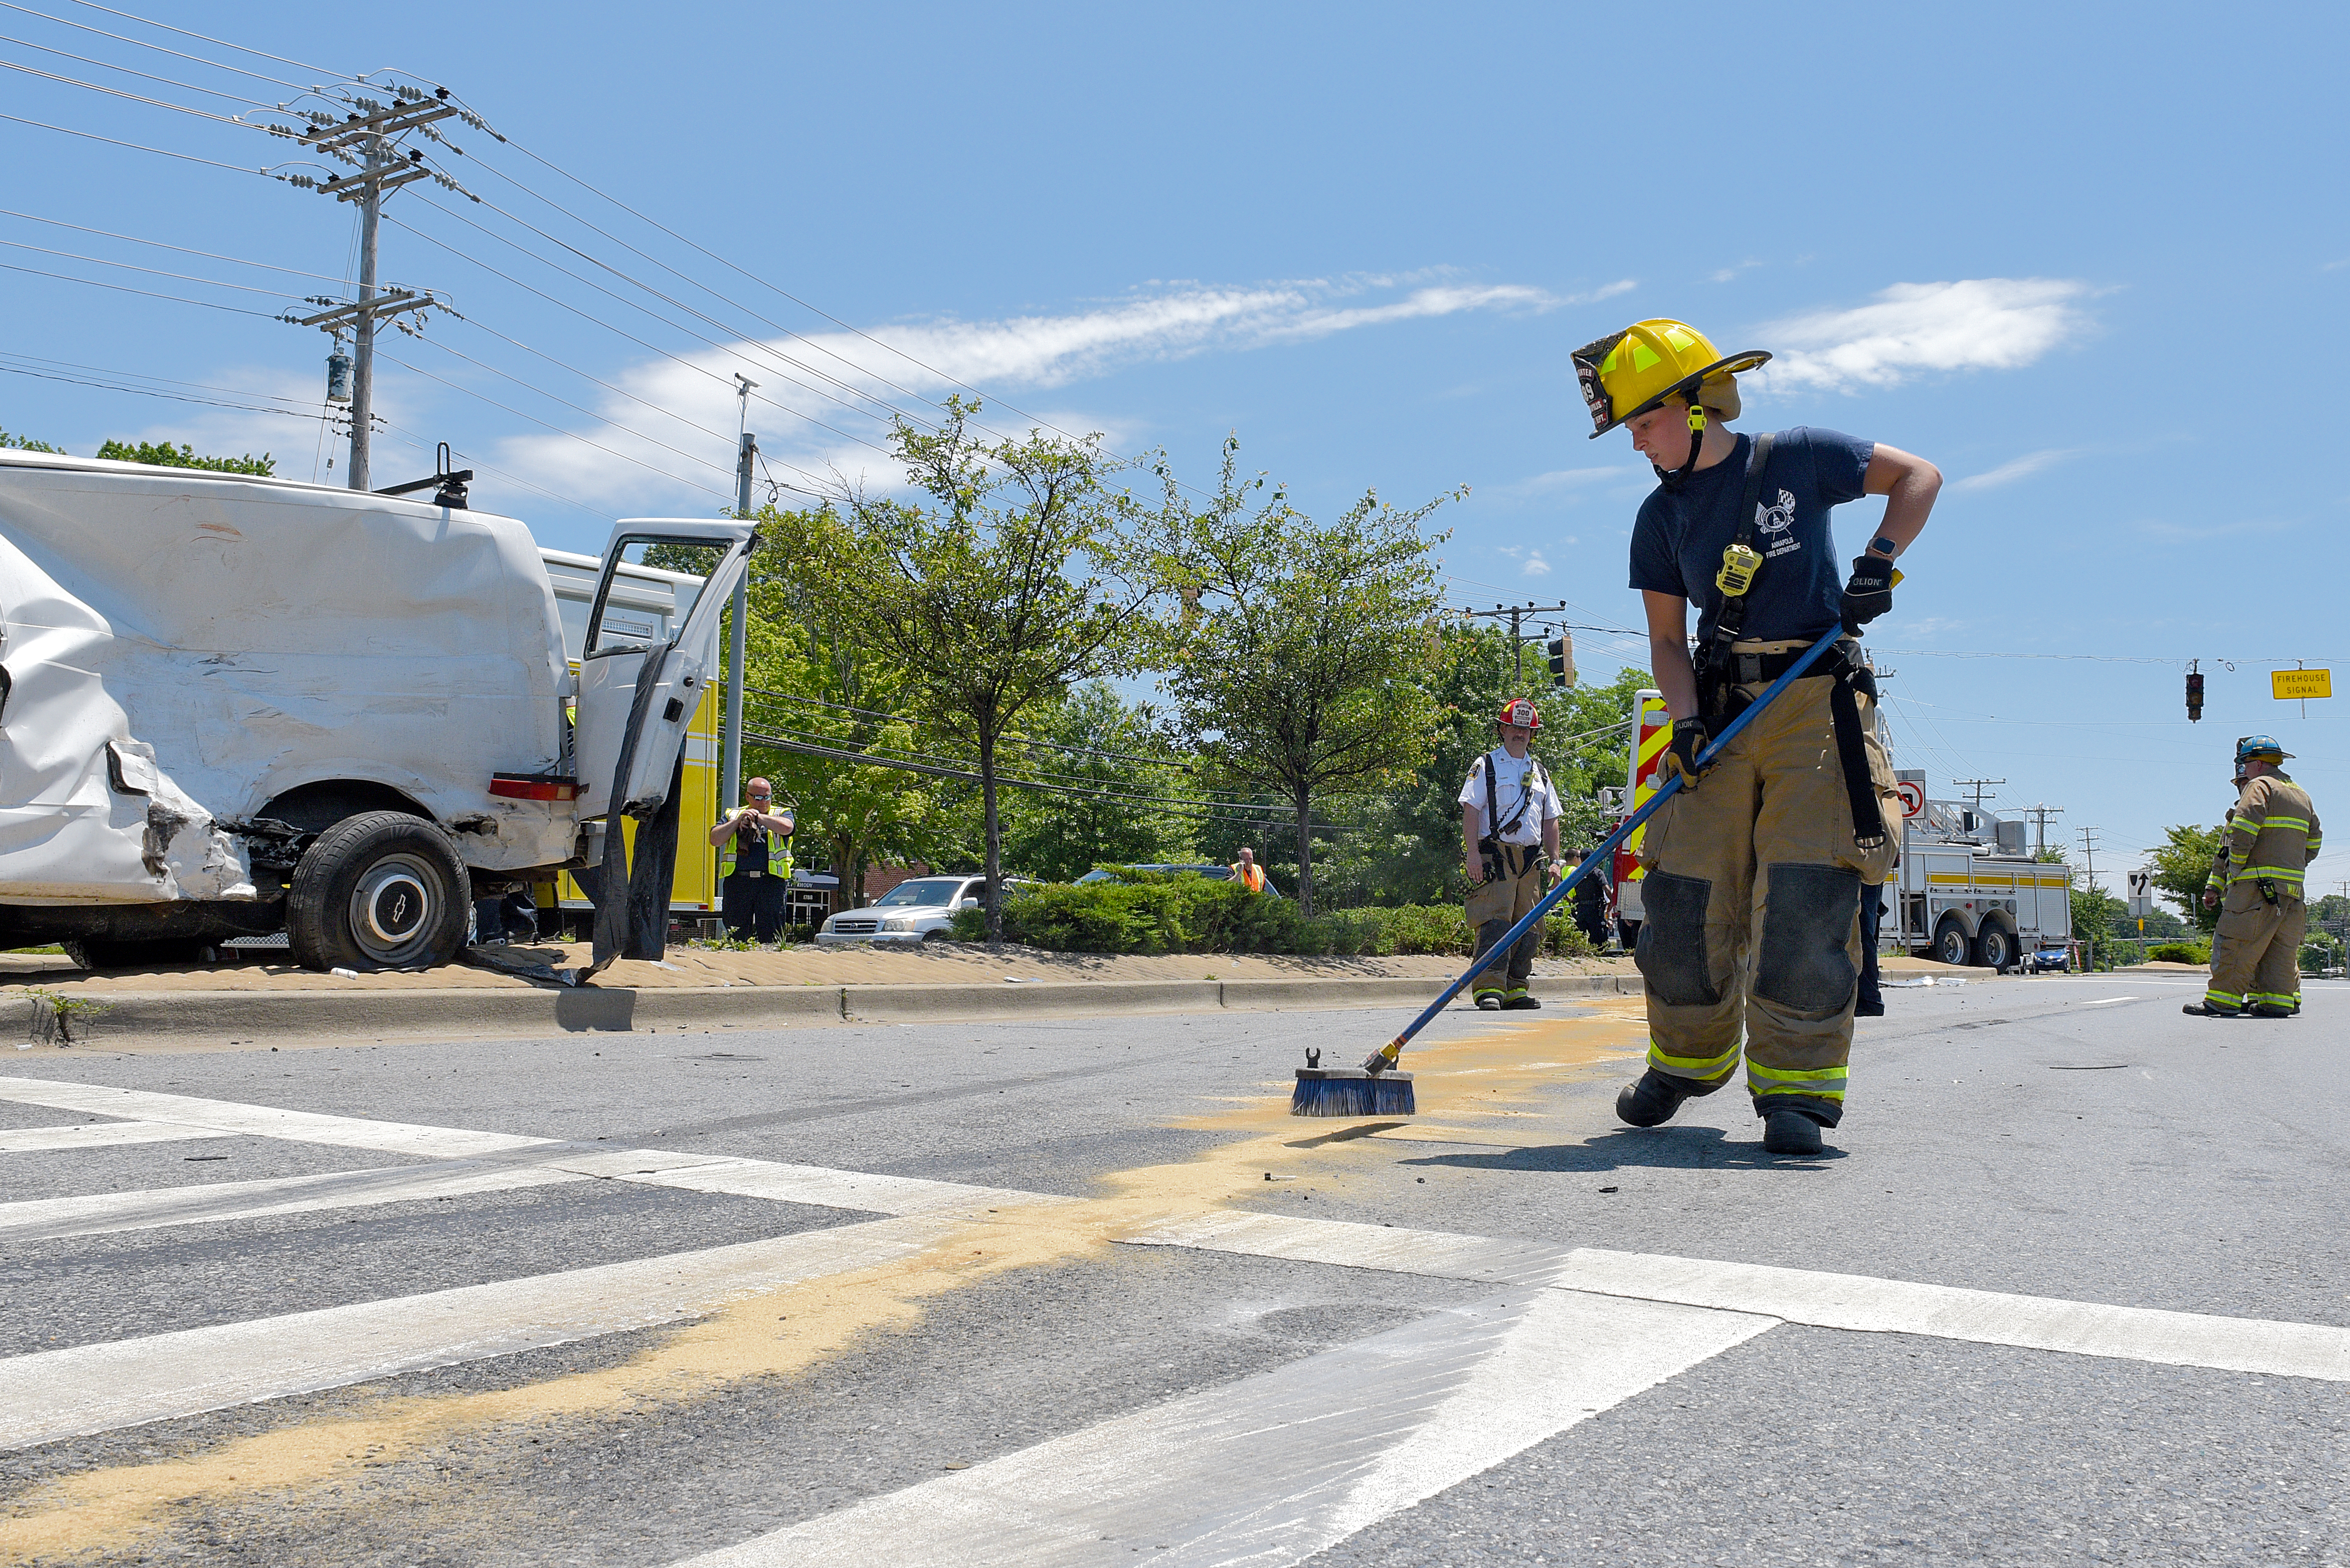 Firefighter sweeping sand onto roadway